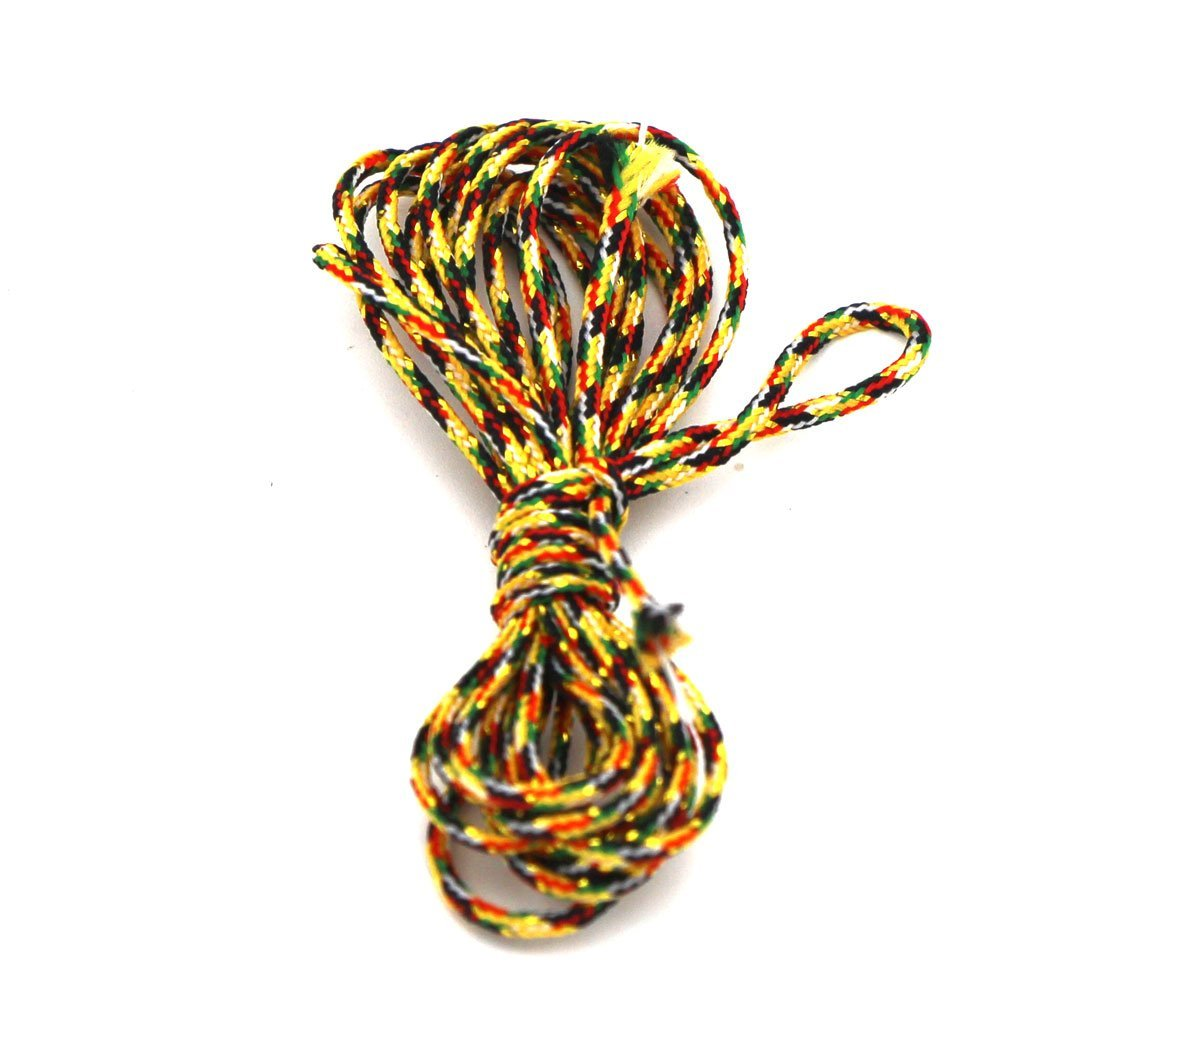 Passion Junetree Cotton Cords Strings Ropes for DIY Necklace Craft Making 1.8mm 10 meters multi color